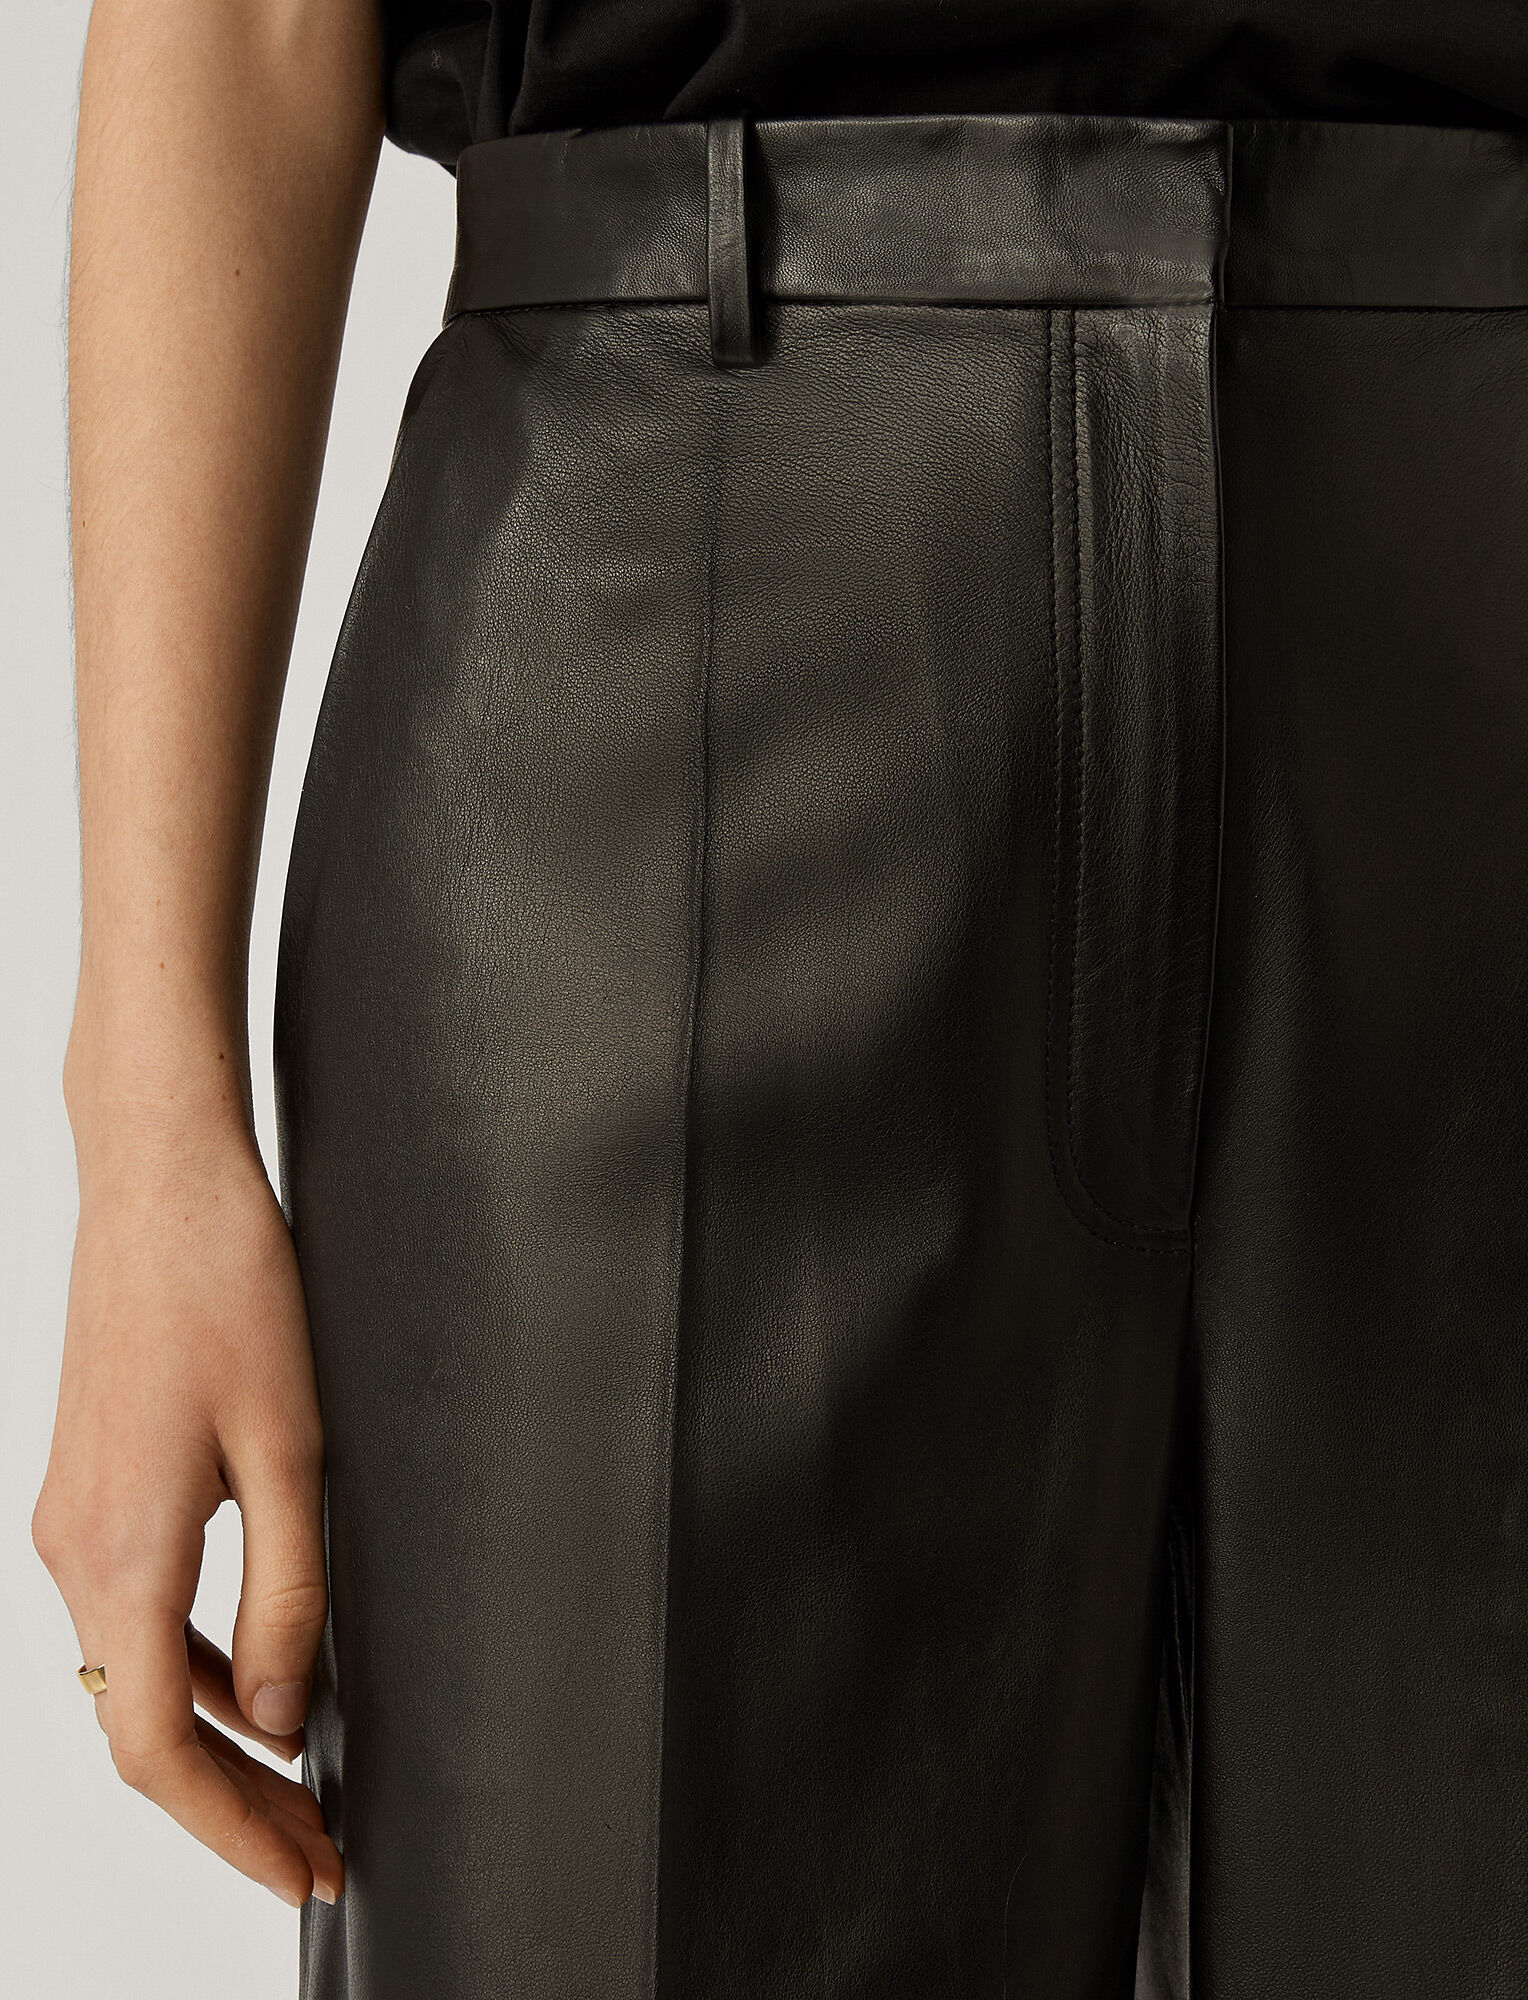 Joseph, Tuba Nappa Leather Bottom, in Black